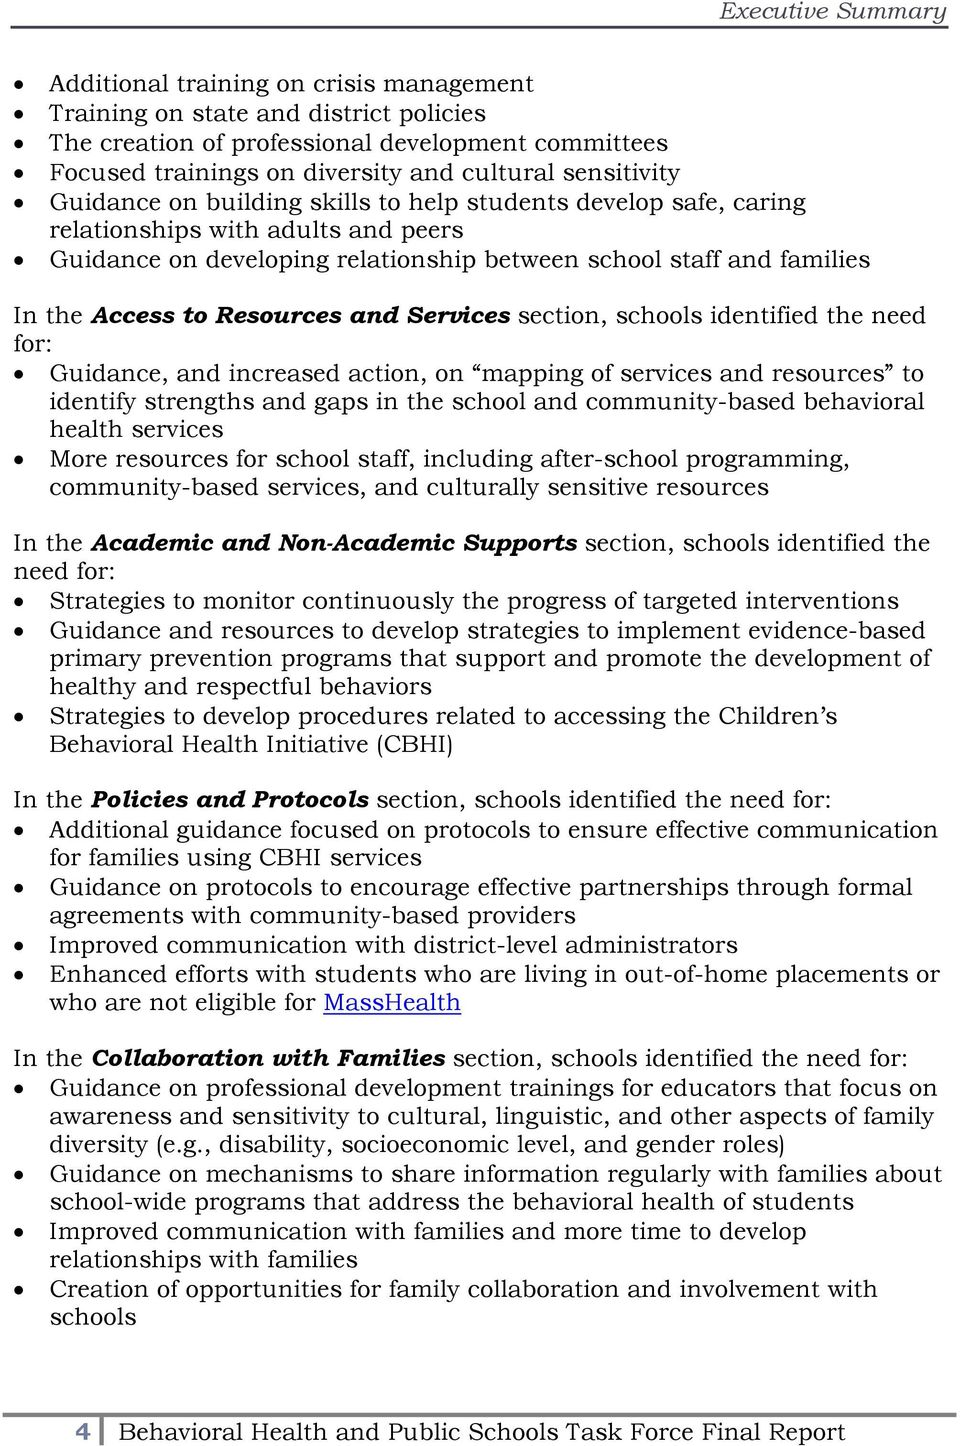 to Resources and Services section, schools identified the need for: Guidance, and increased action, on mapping of services and resources to identify strengths and gaps in the school and